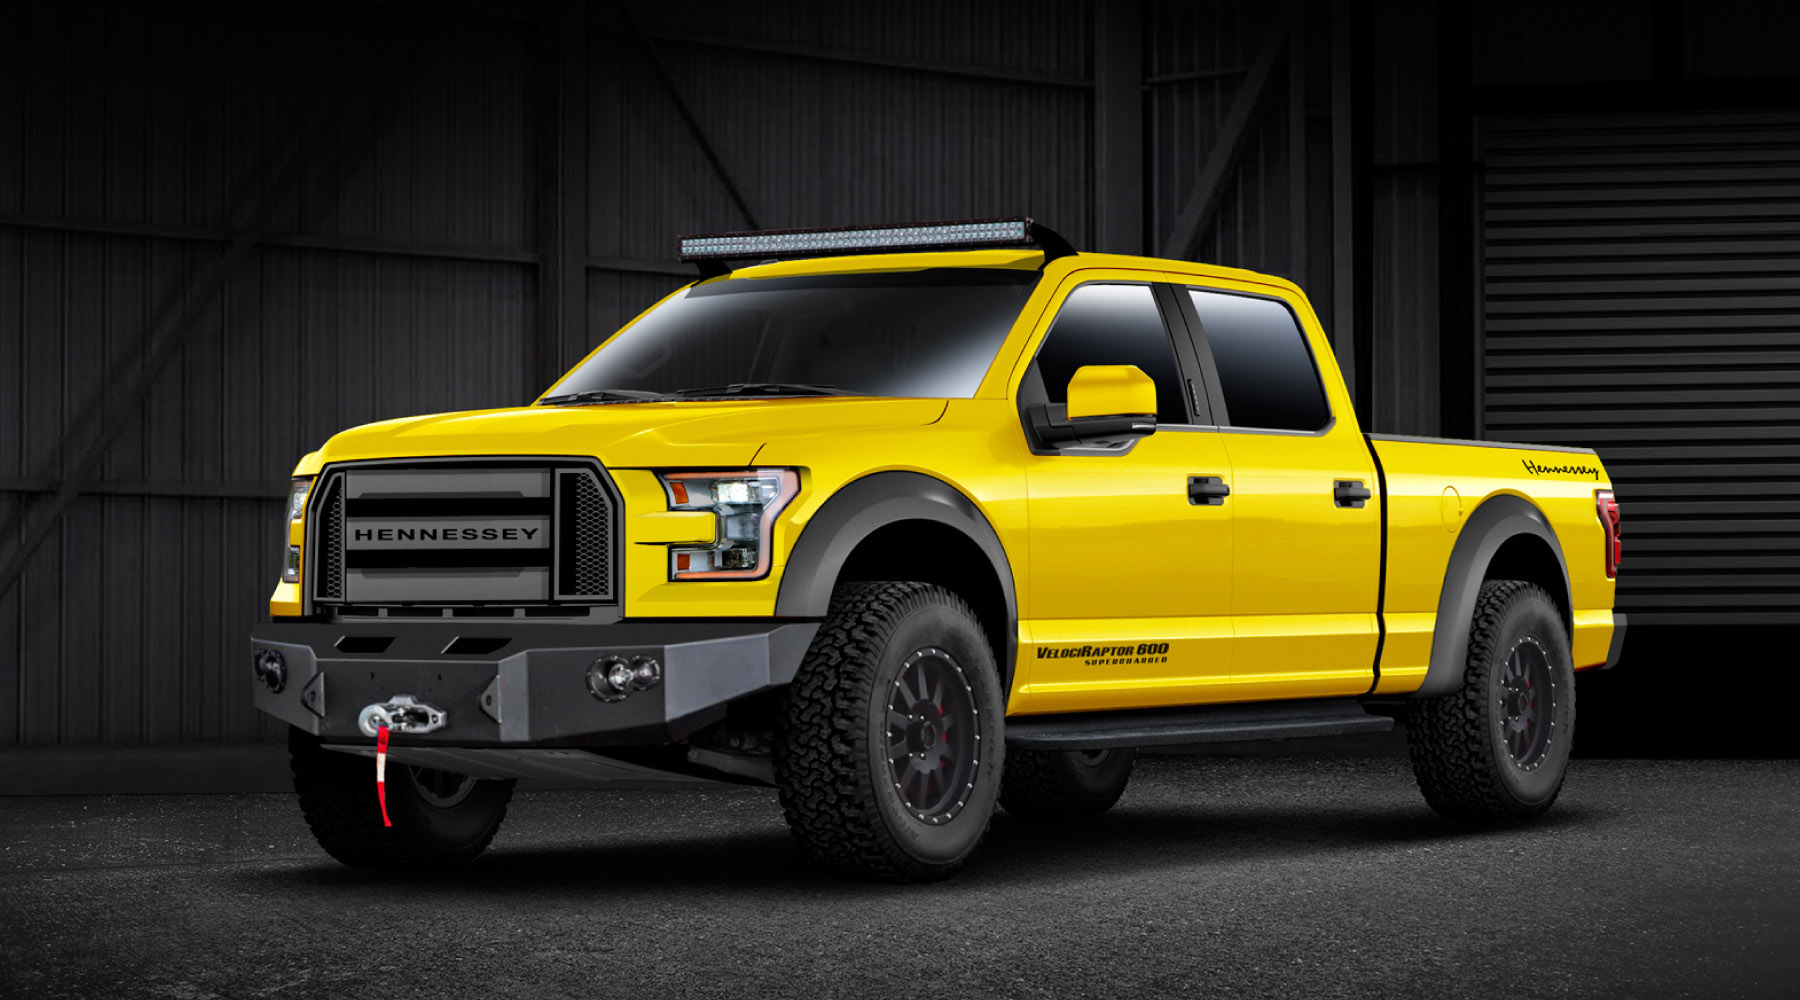 Hennessey Ford VelociRaptor 600 Supercharged photo #1